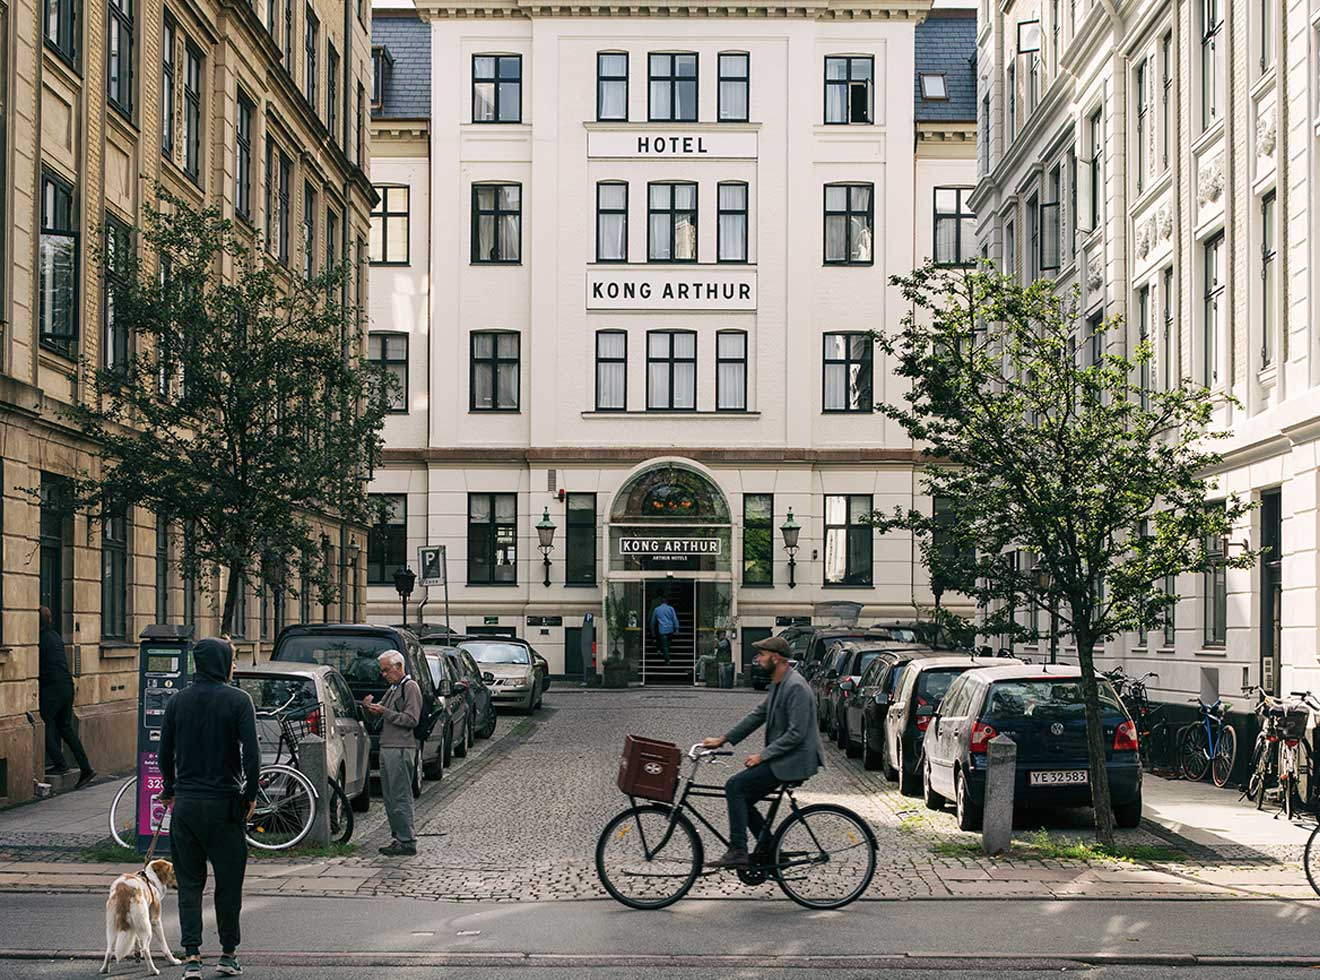 Copenhagen Travel Guide: 4 Days of Hygge and World-Class Dining